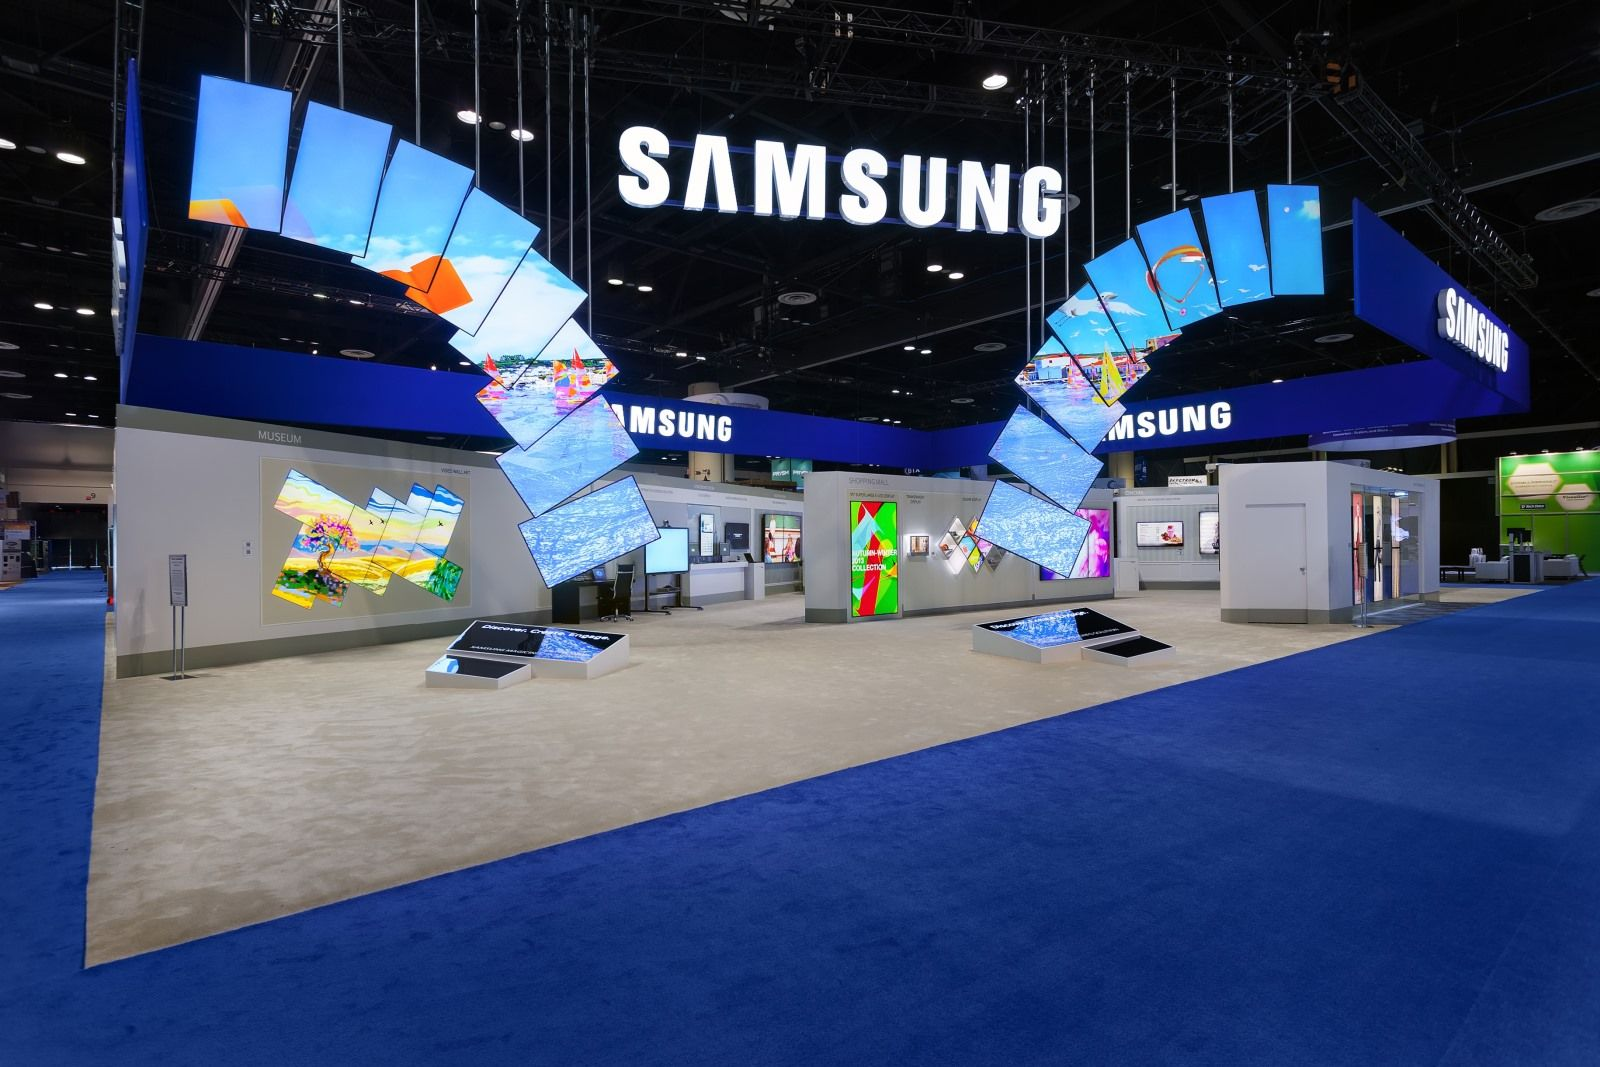 Samsung Exhibition Stand Design : Great design for this samsung tradeshow booth booths